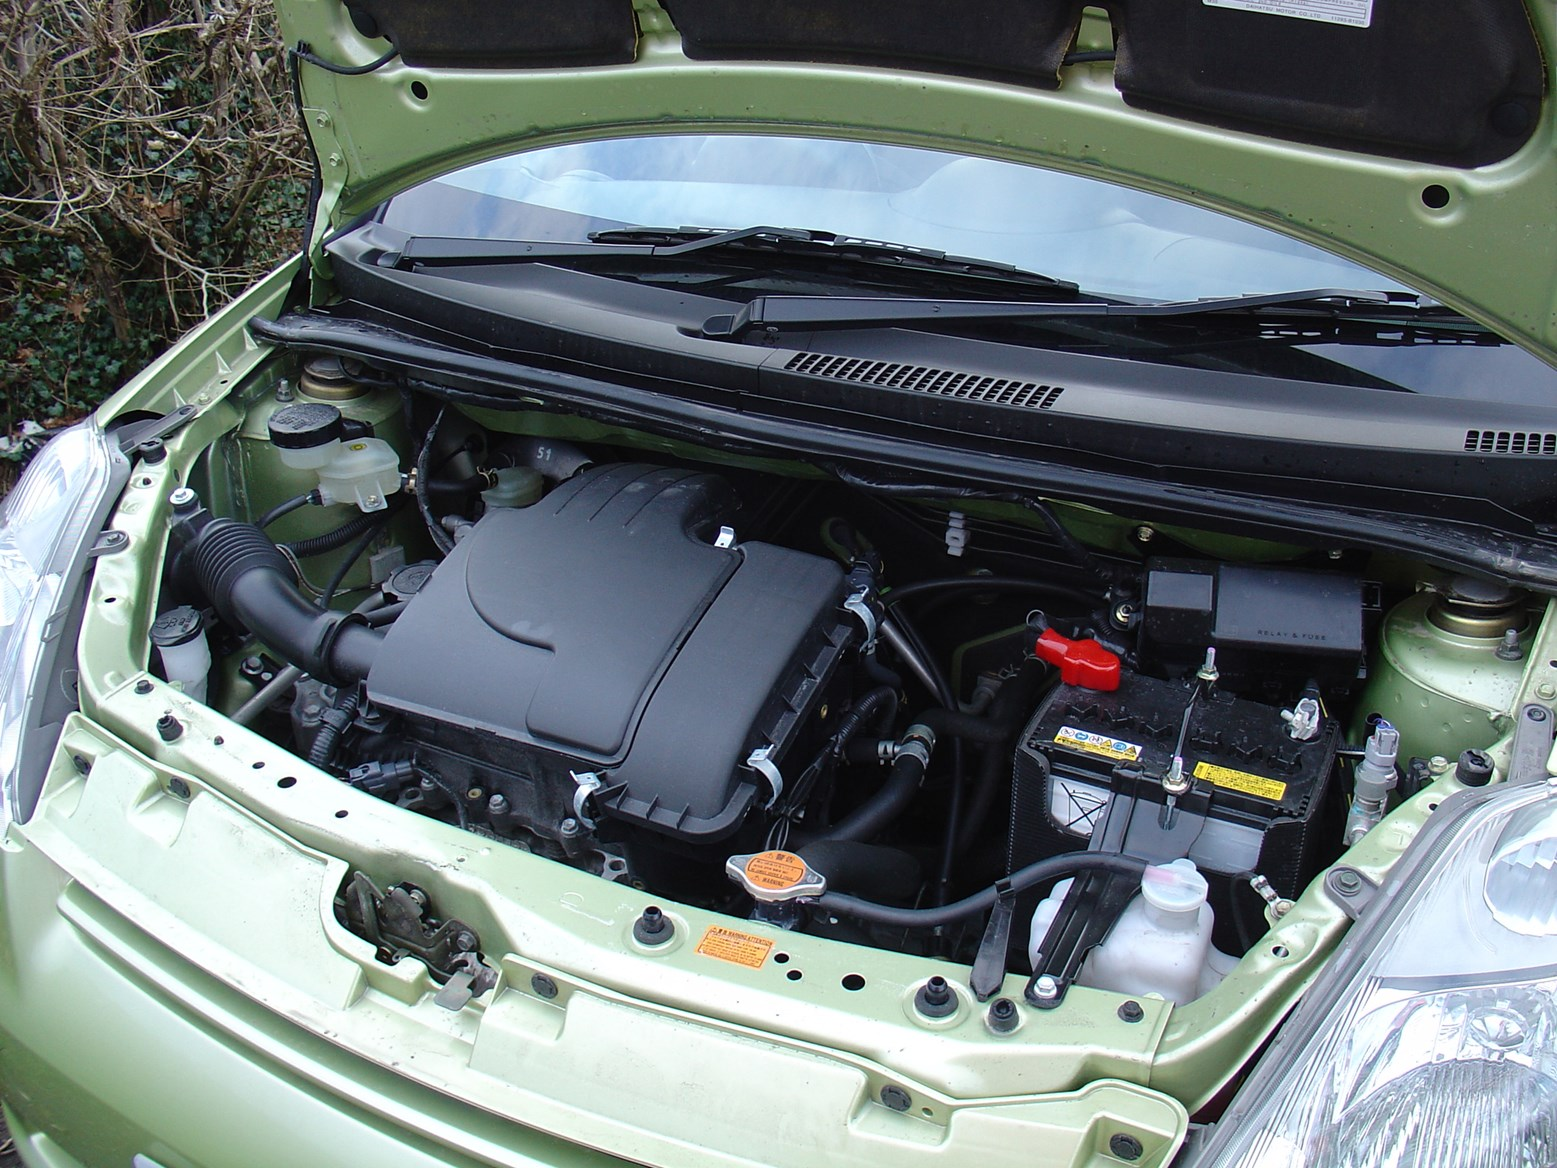 Used Daihatsu Sirion Hatchback (2005 - 2010) Engines | Parkers